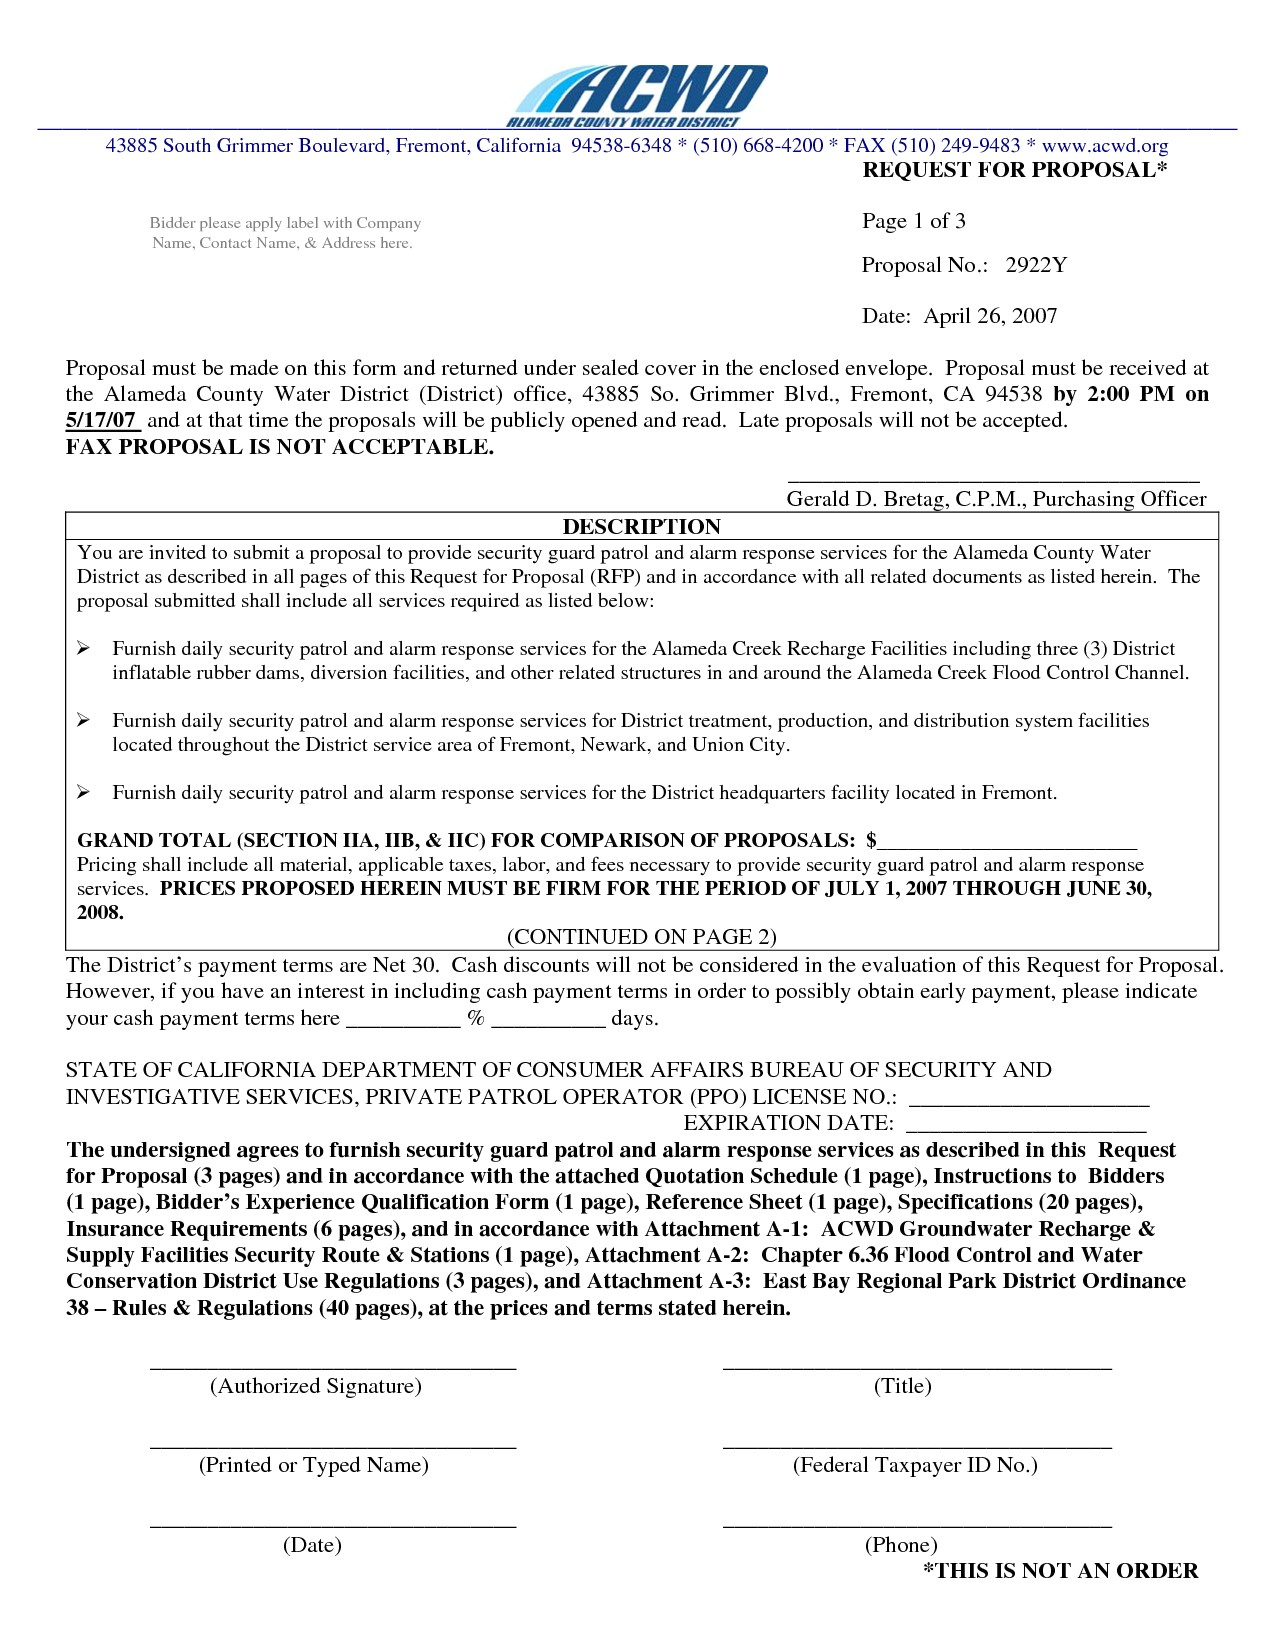 Security Guard Proposal Template 8 Best Images Of Security Proposal Letter From Company